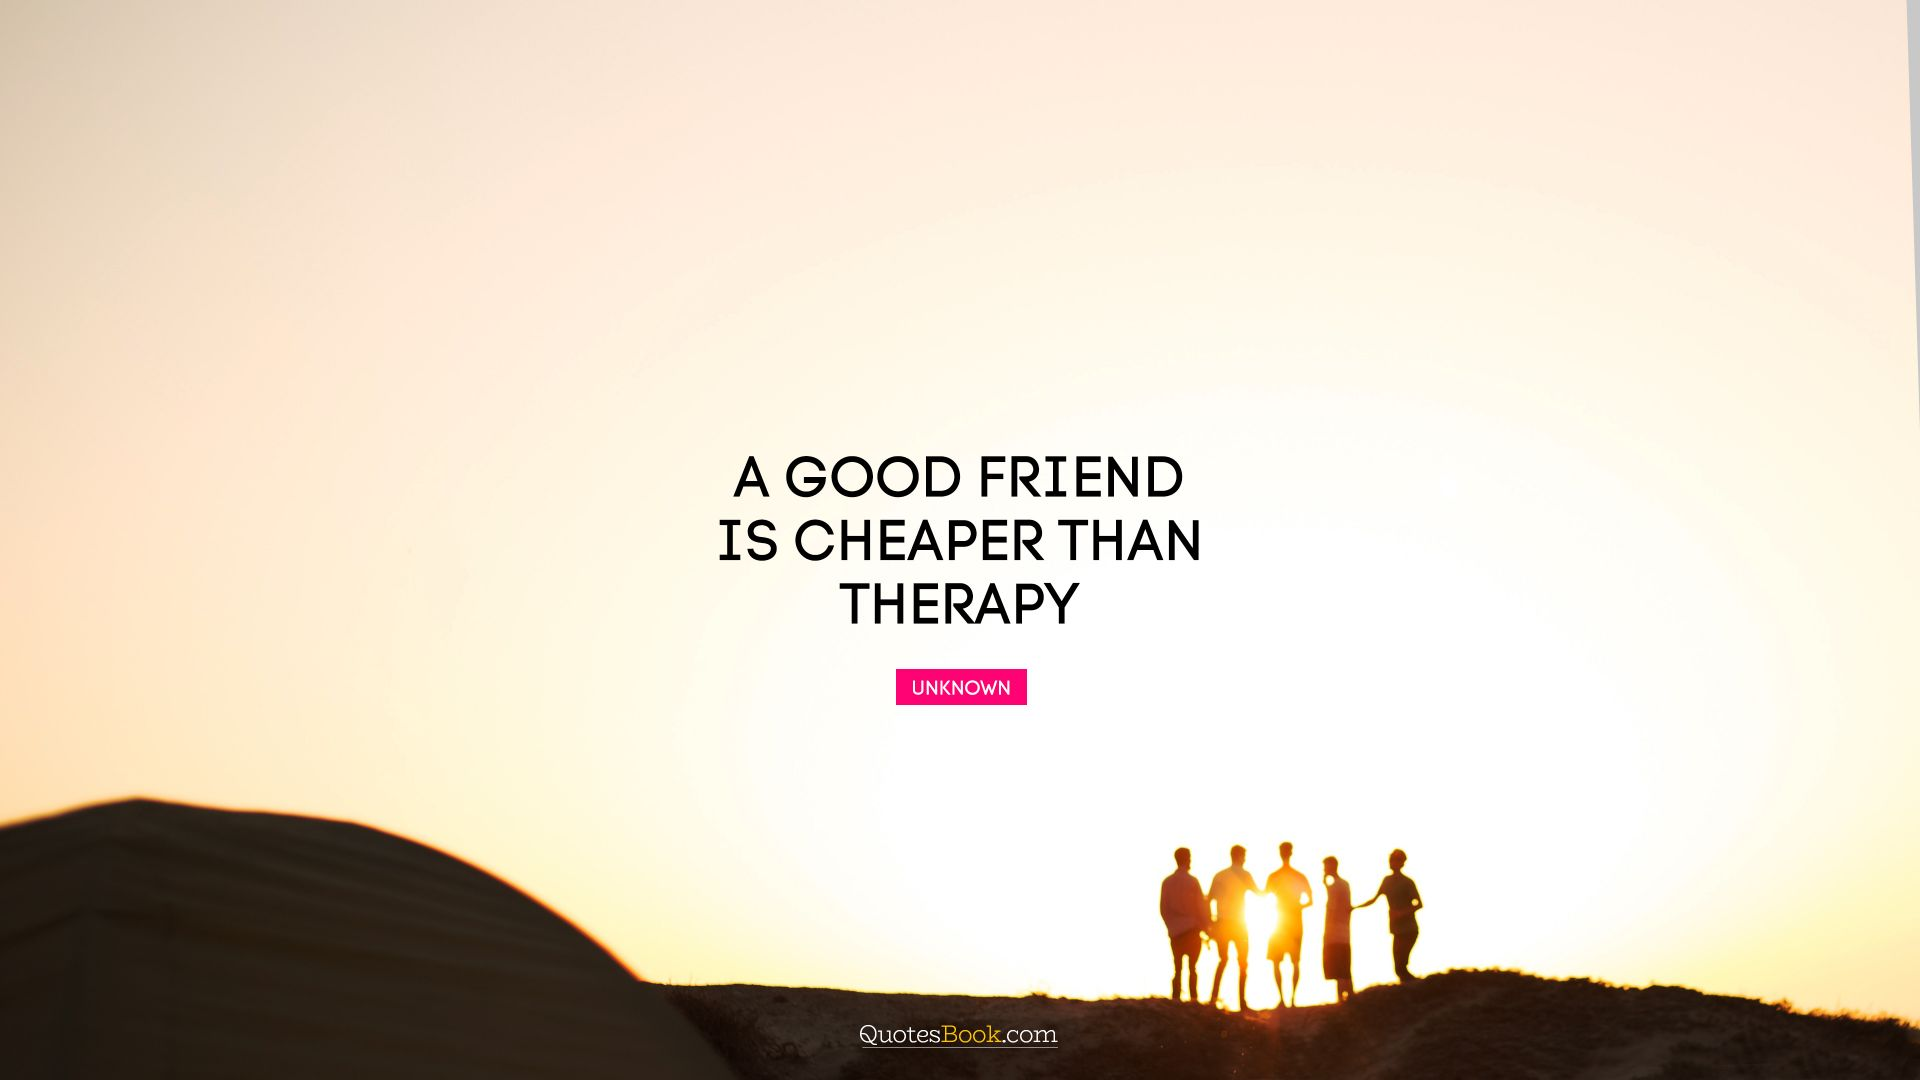 A good friend is cheaper than therapy